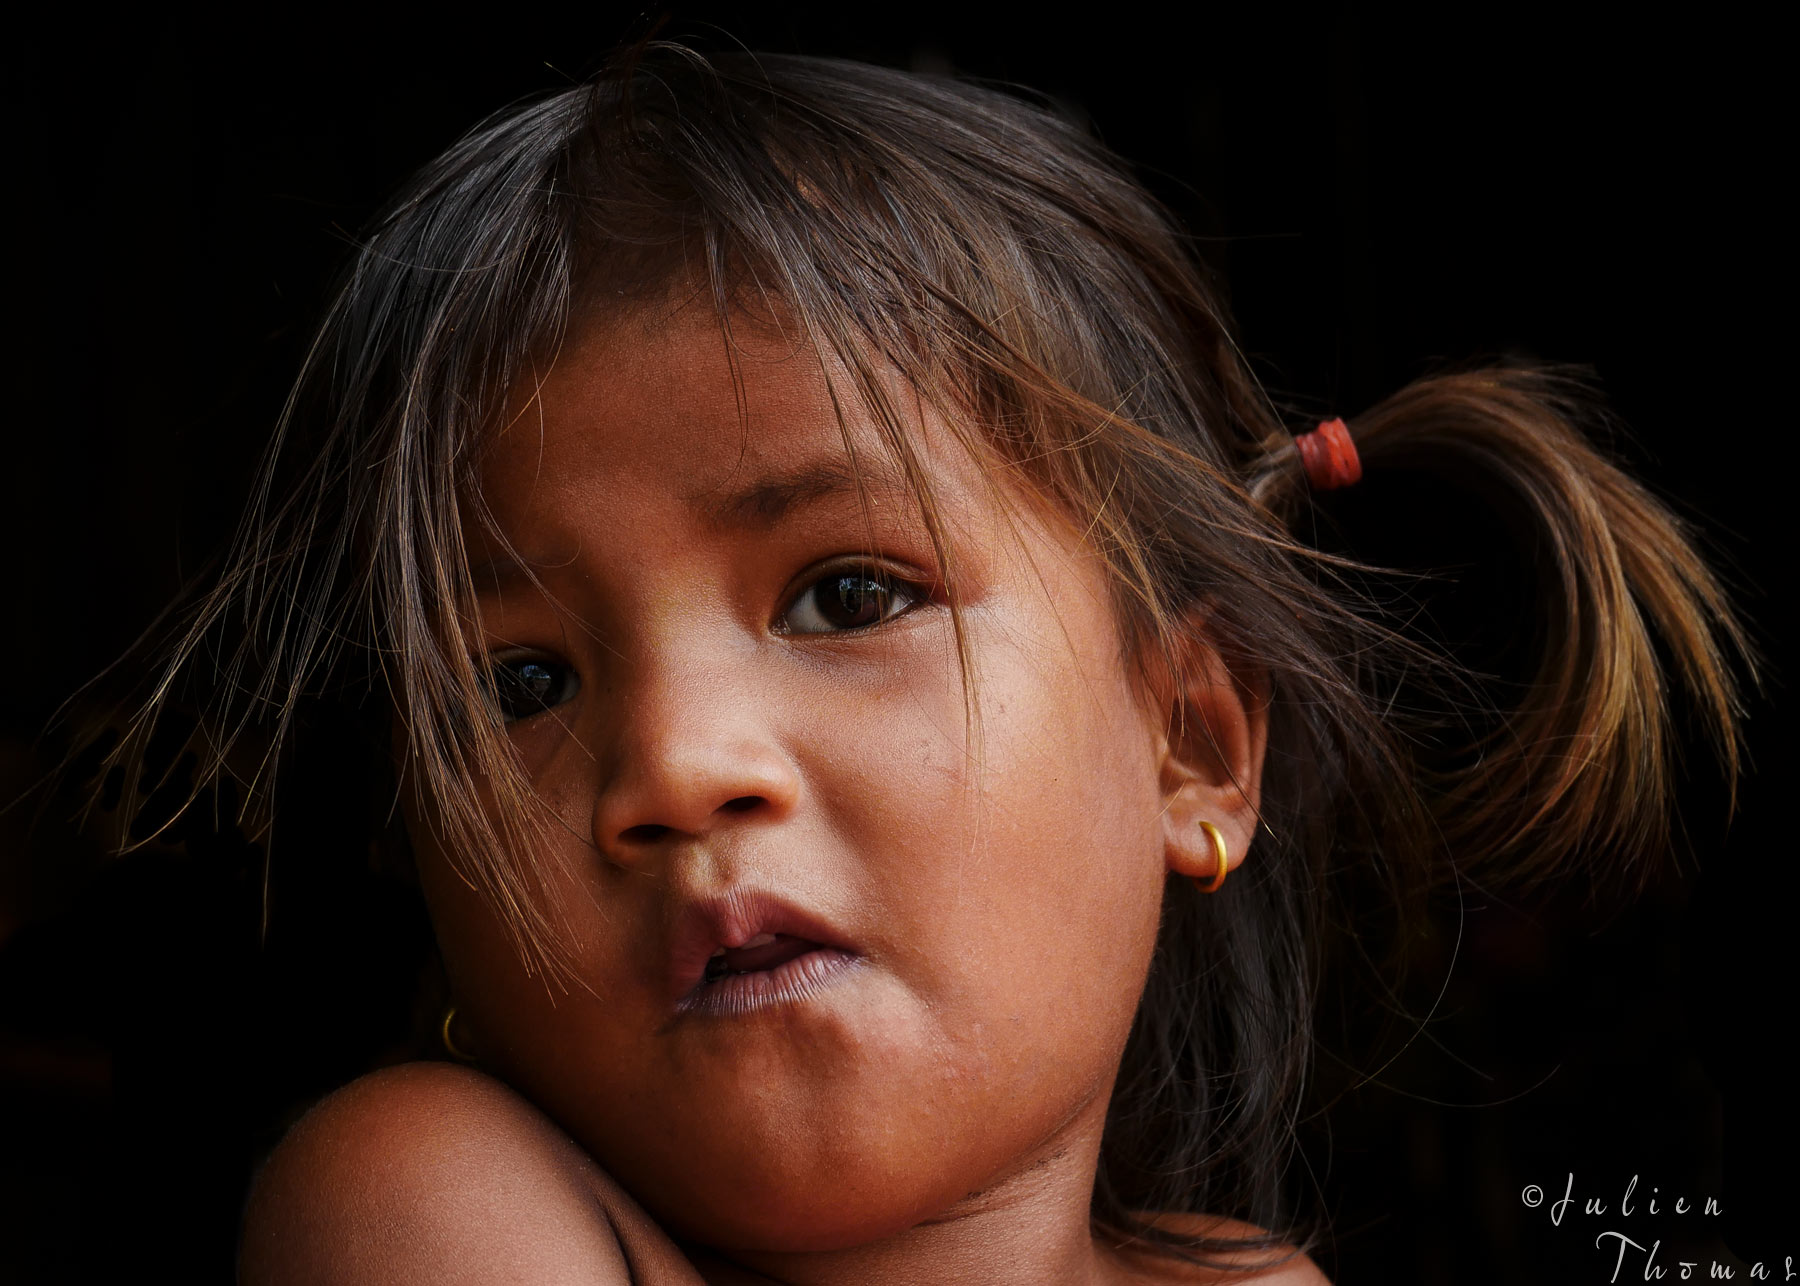 Cambodian child from the countryside of Kratie Province - photography by Julien Thomas.